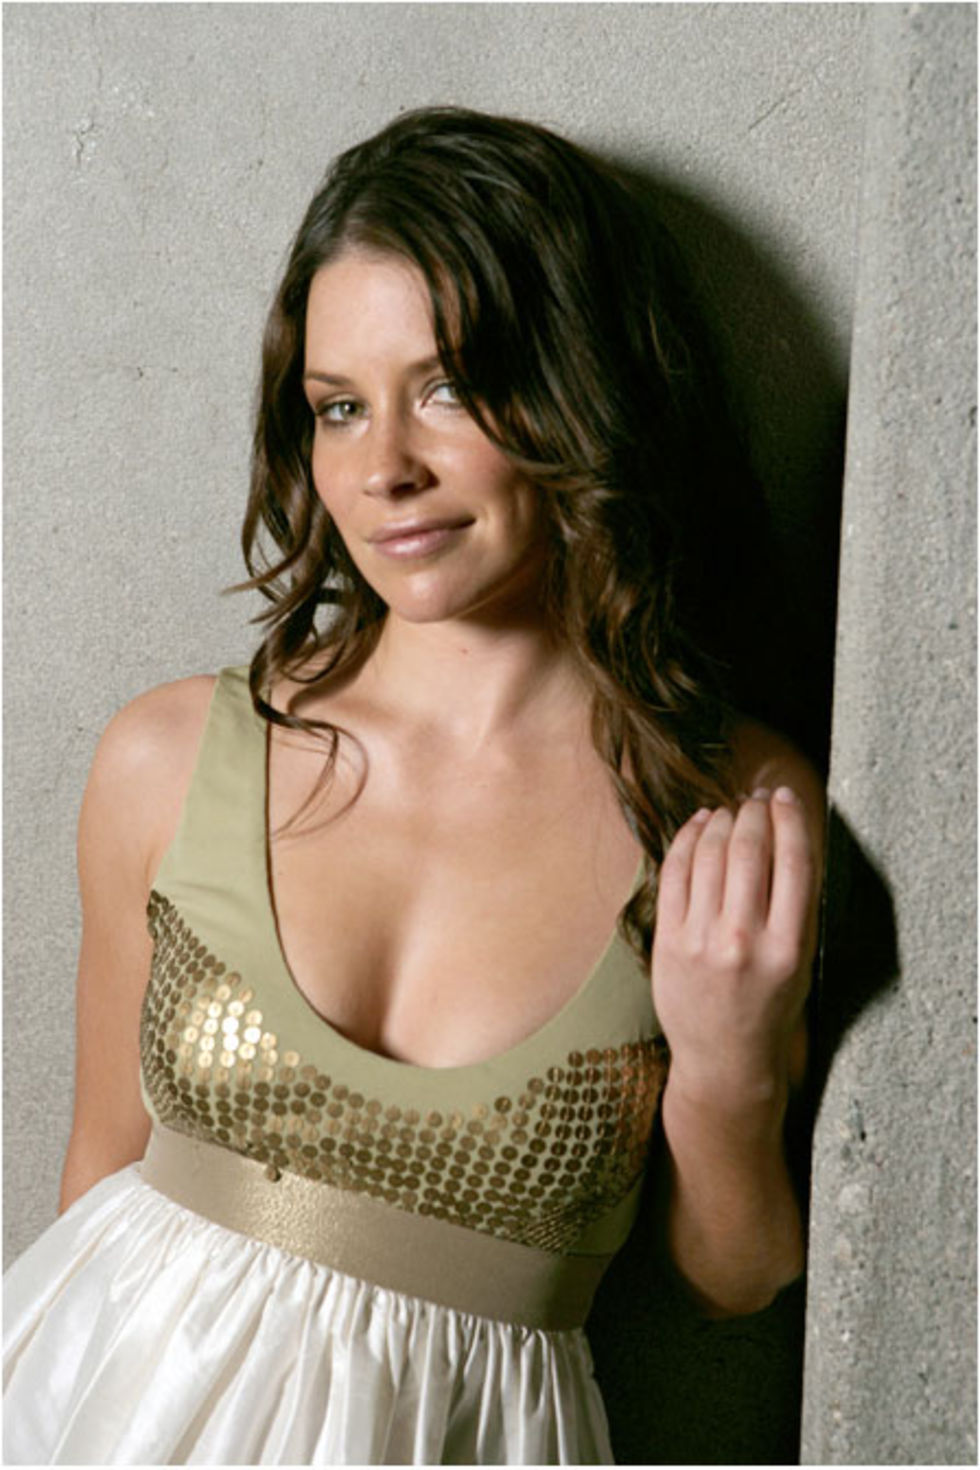 evangeline-lilly-flare-magazine-shoot-03.jpg